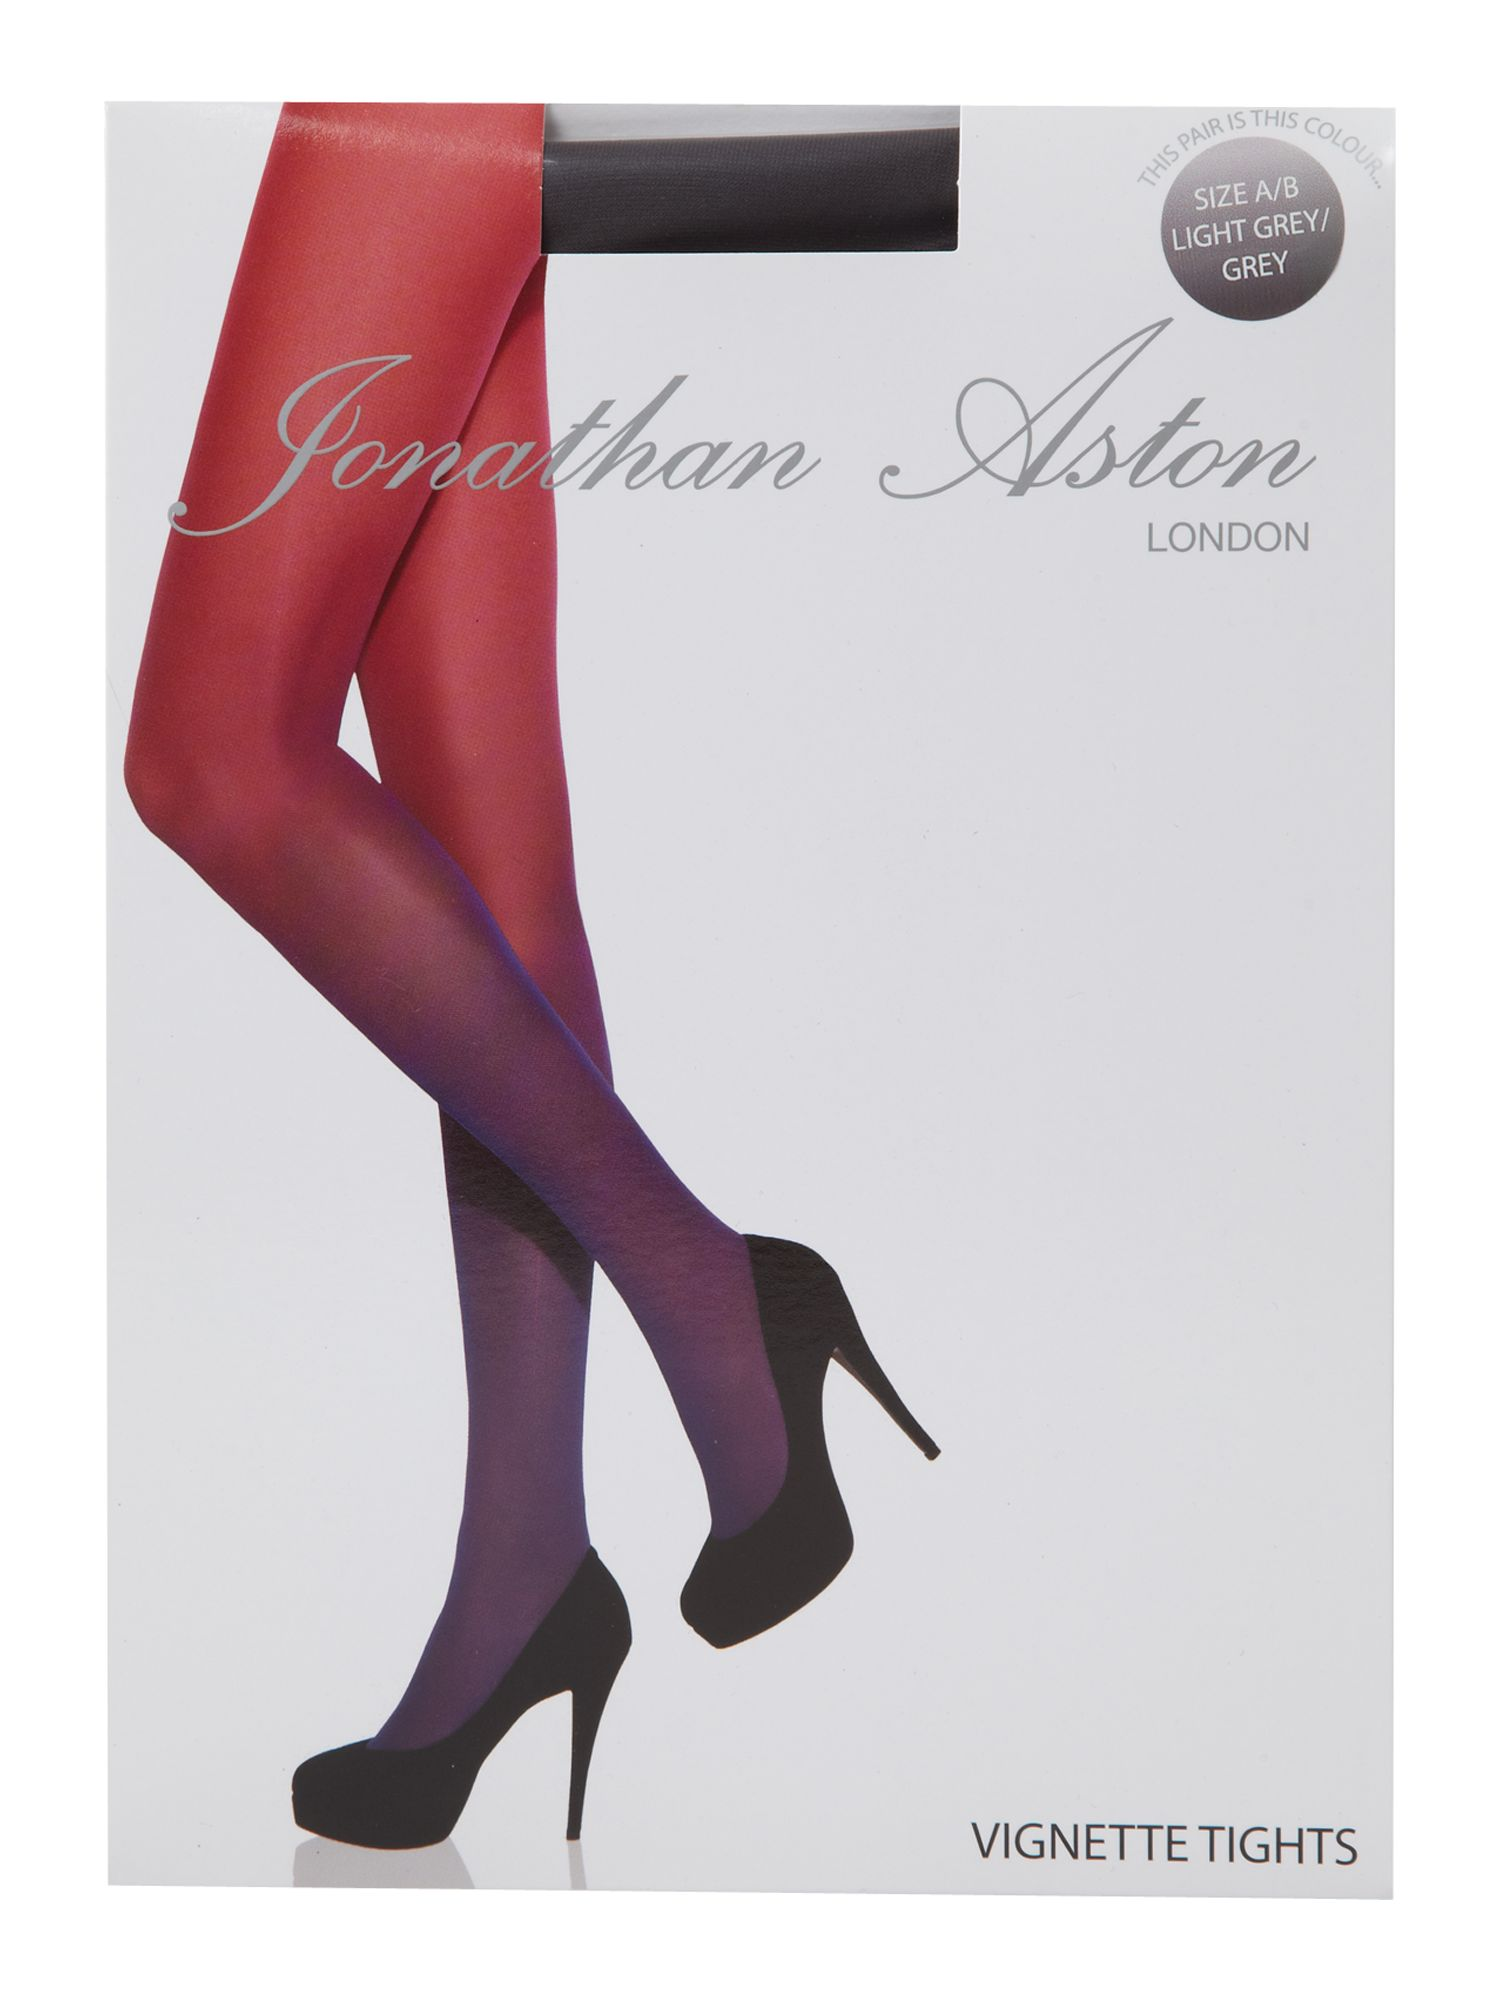 Vignette tights